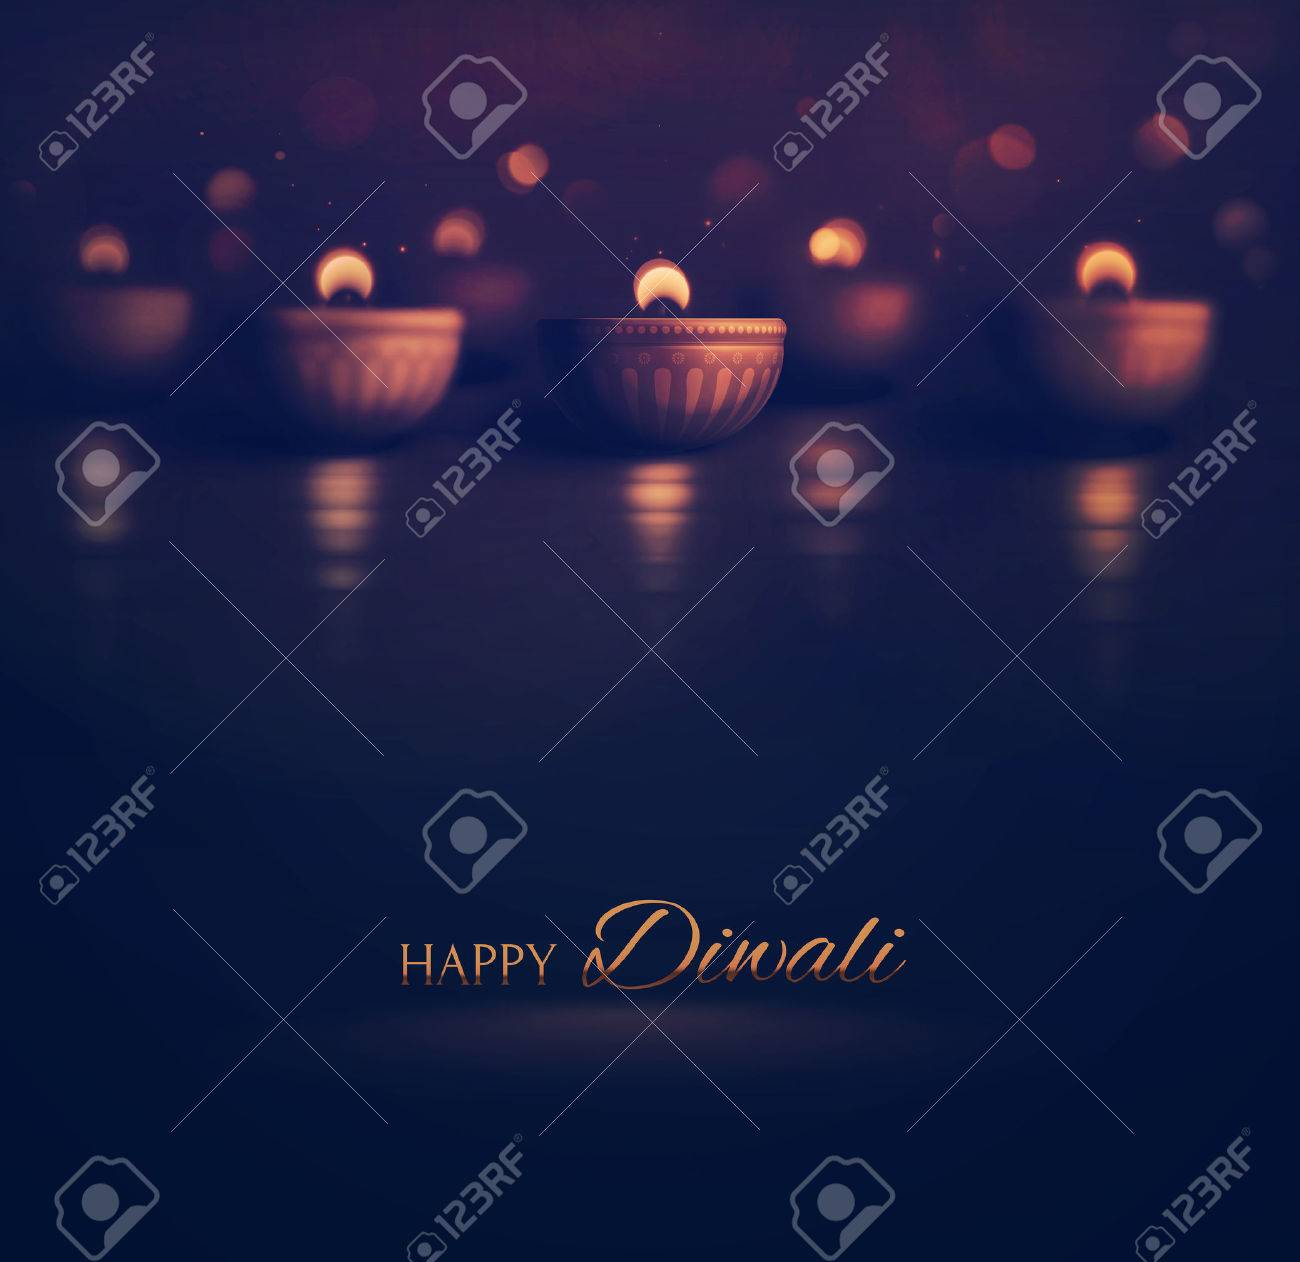 Happy Diwali, burning diya, eps 10 Standard-Bild - 46952303